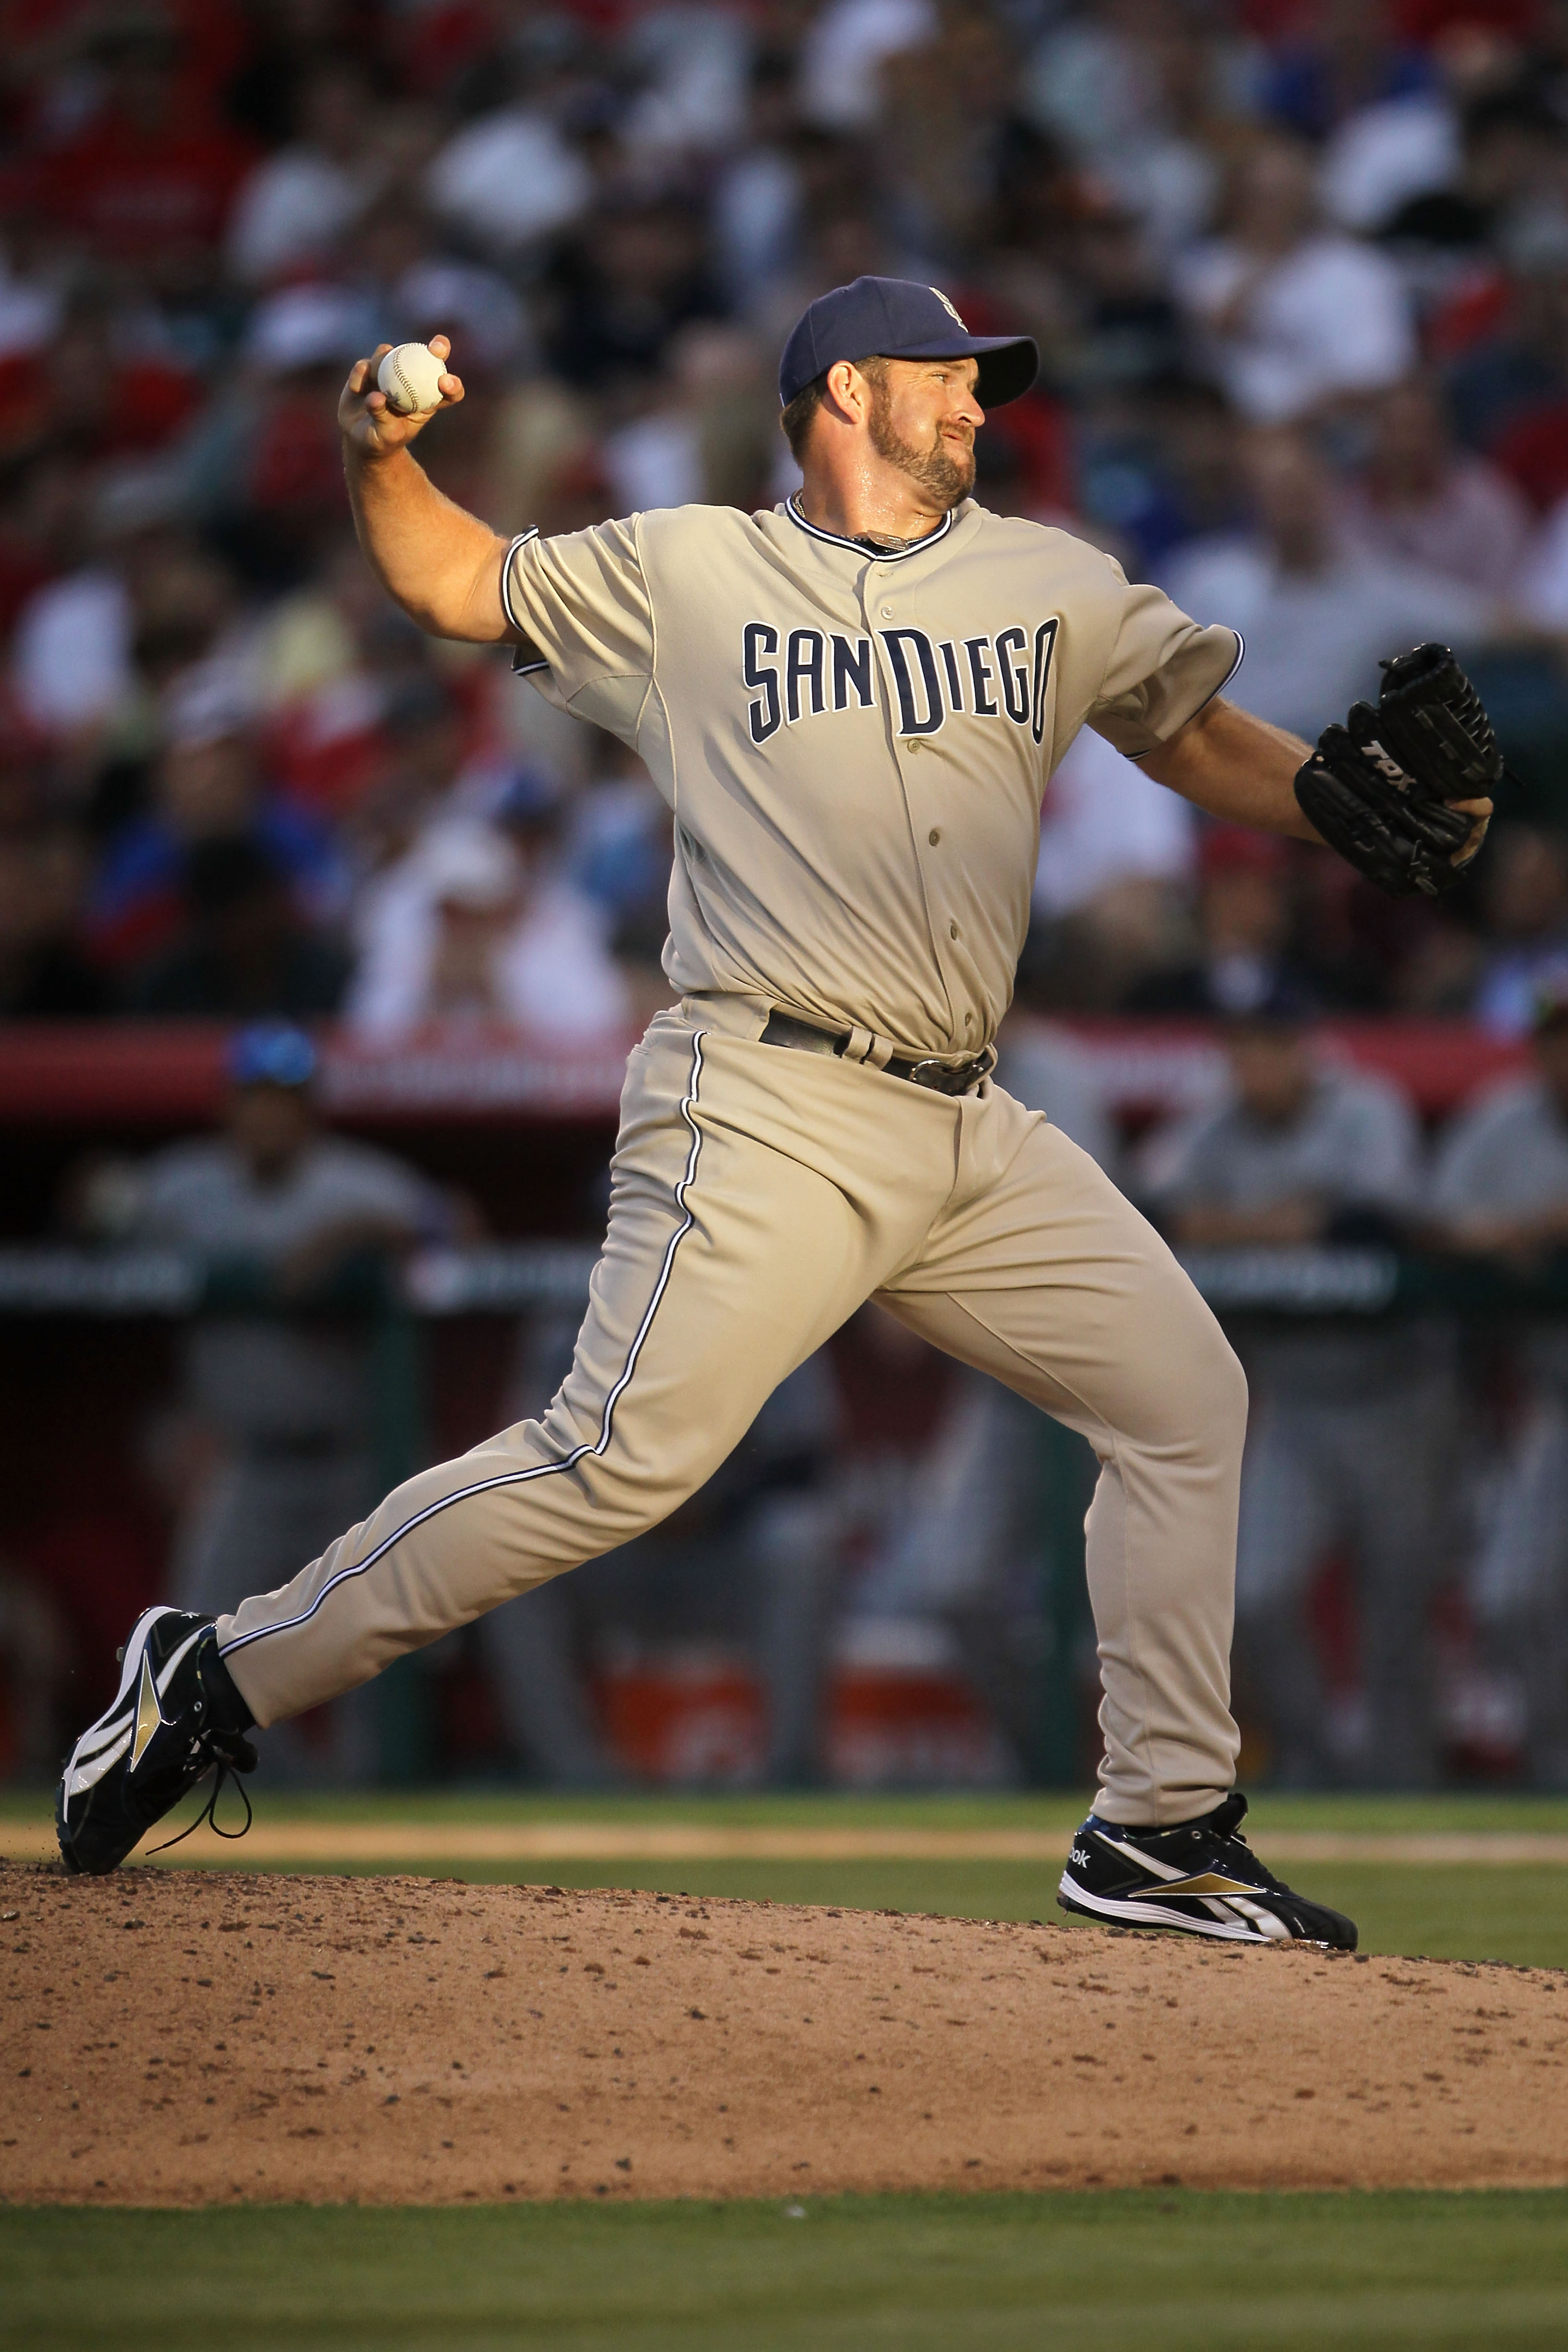 ANAHEIM, CA - JULY 13:  National League All-Star Heath Bell #21 of the San Deigo Padres throws a pitch during the 81st MLB All-Star Game at Angel Stadium of Anaheim on July 13, 2010 in Anaheim, California.  (Photo by Jeff Gross/Getty Images)